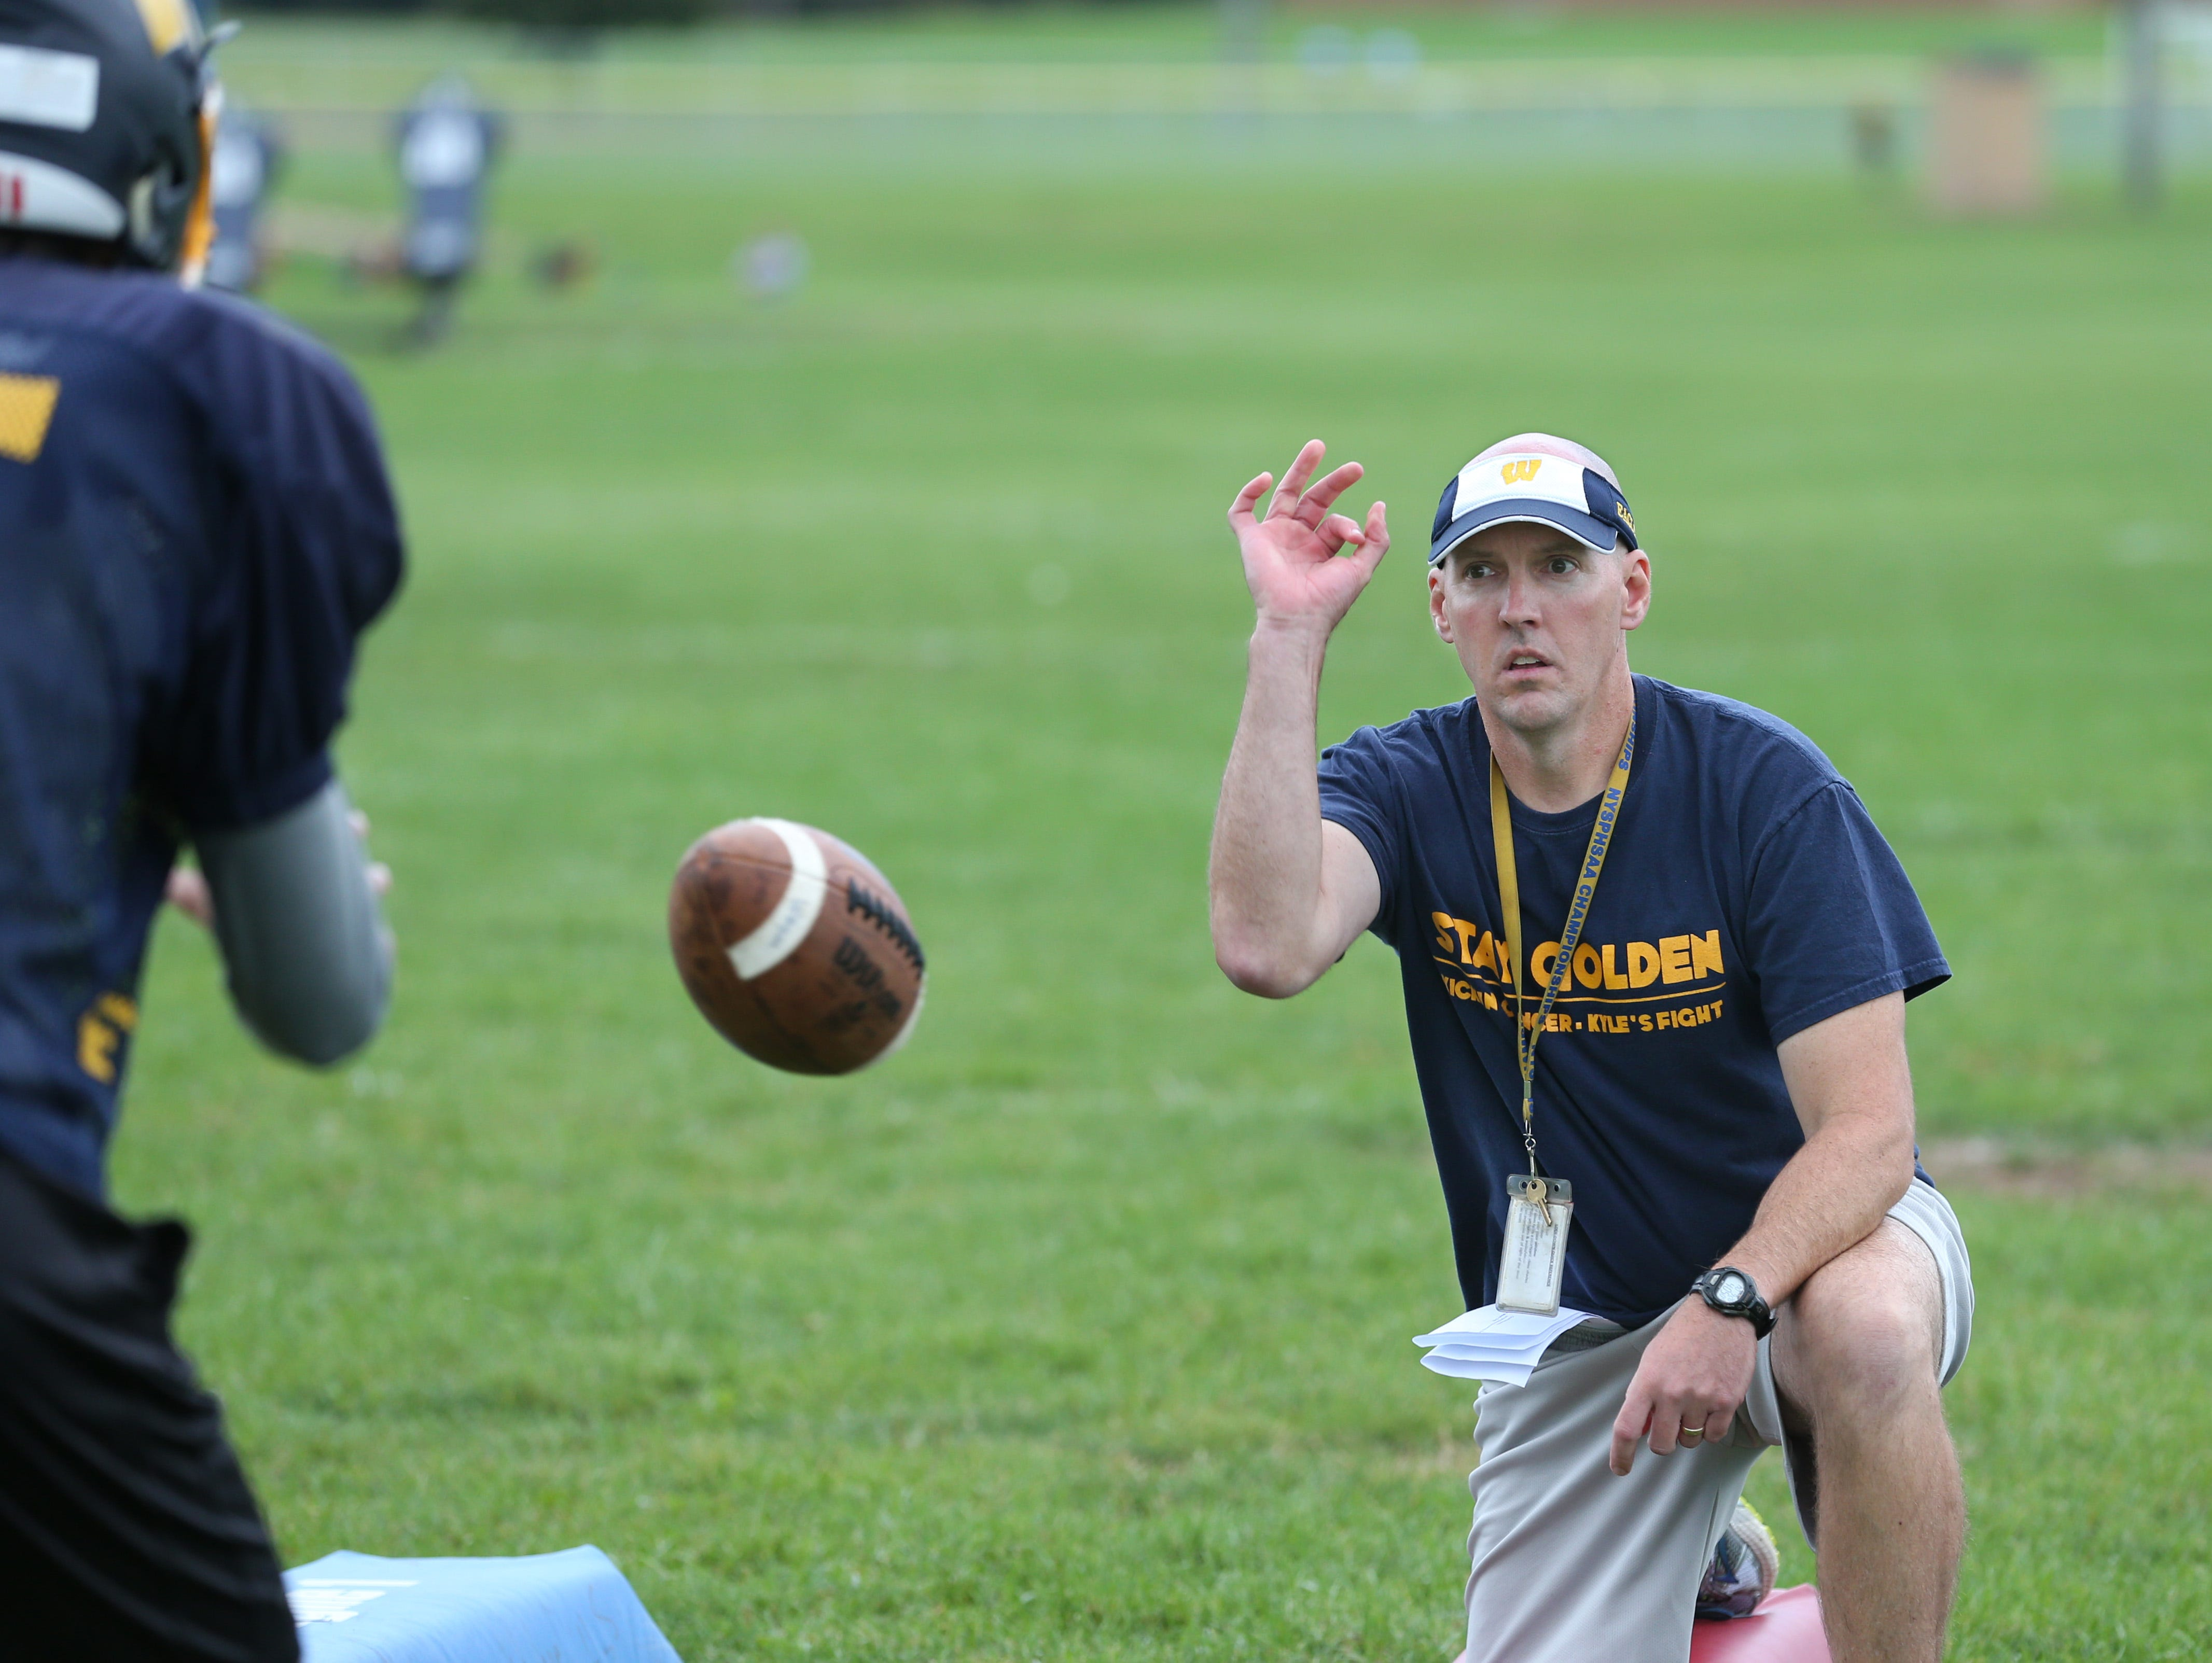 Wayne varsity football head coach David Marean snaps the ball to his quarterback Braeden Zenelovic, as the offensive unit runs through plays during the team's practice at Wayne Central School in Ontario Monday, Sept. 28, 2015.